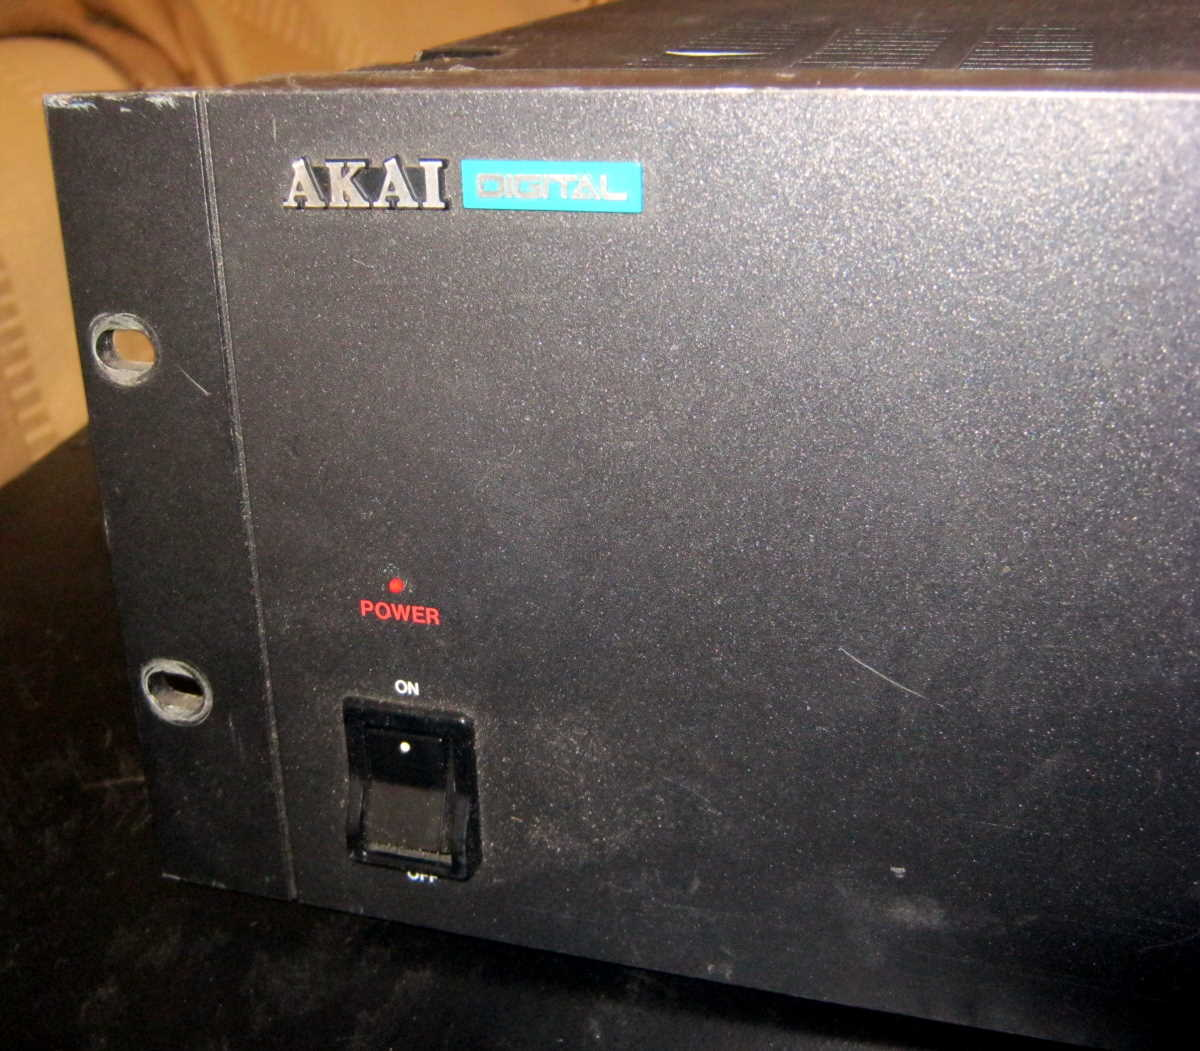 Akai DD 1500m Power light